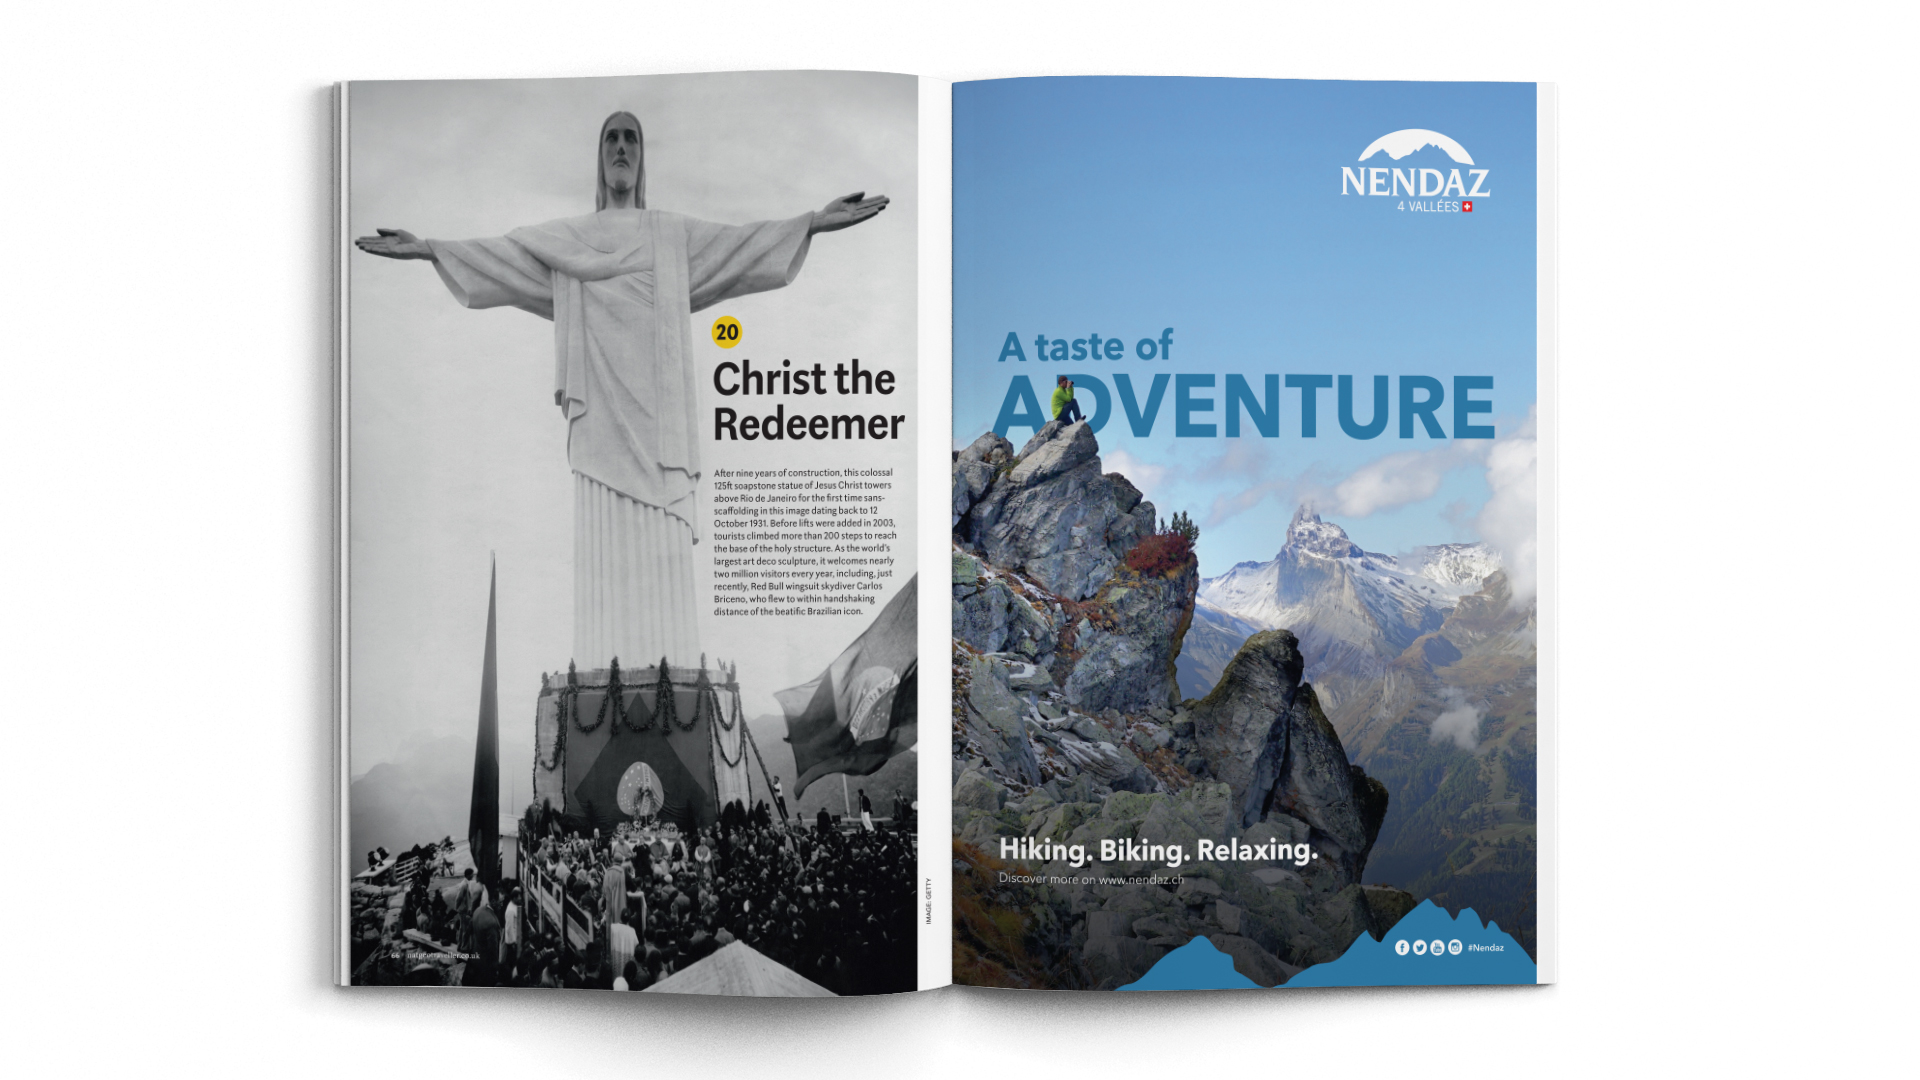 A4-Magazine-DPS-NGT-TRIPS-Rio